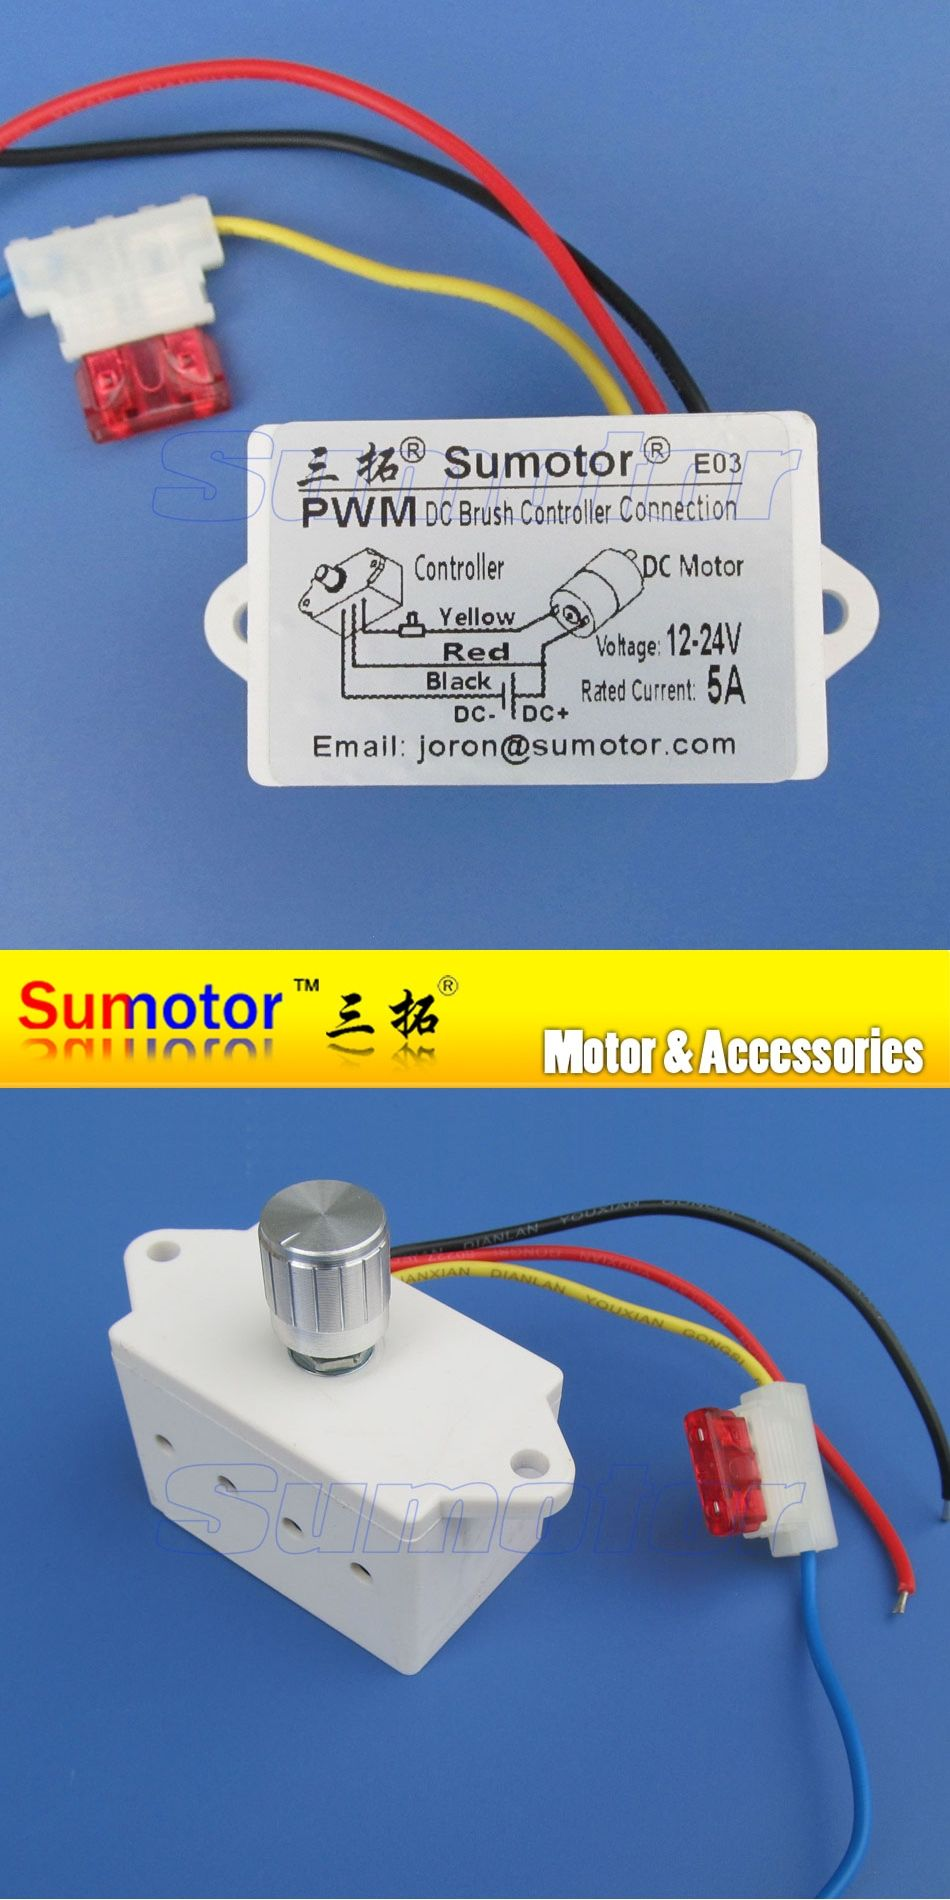 12V 24V, 5A, 60W 120W Adjustable Regulator PWM speed control Pulse ...